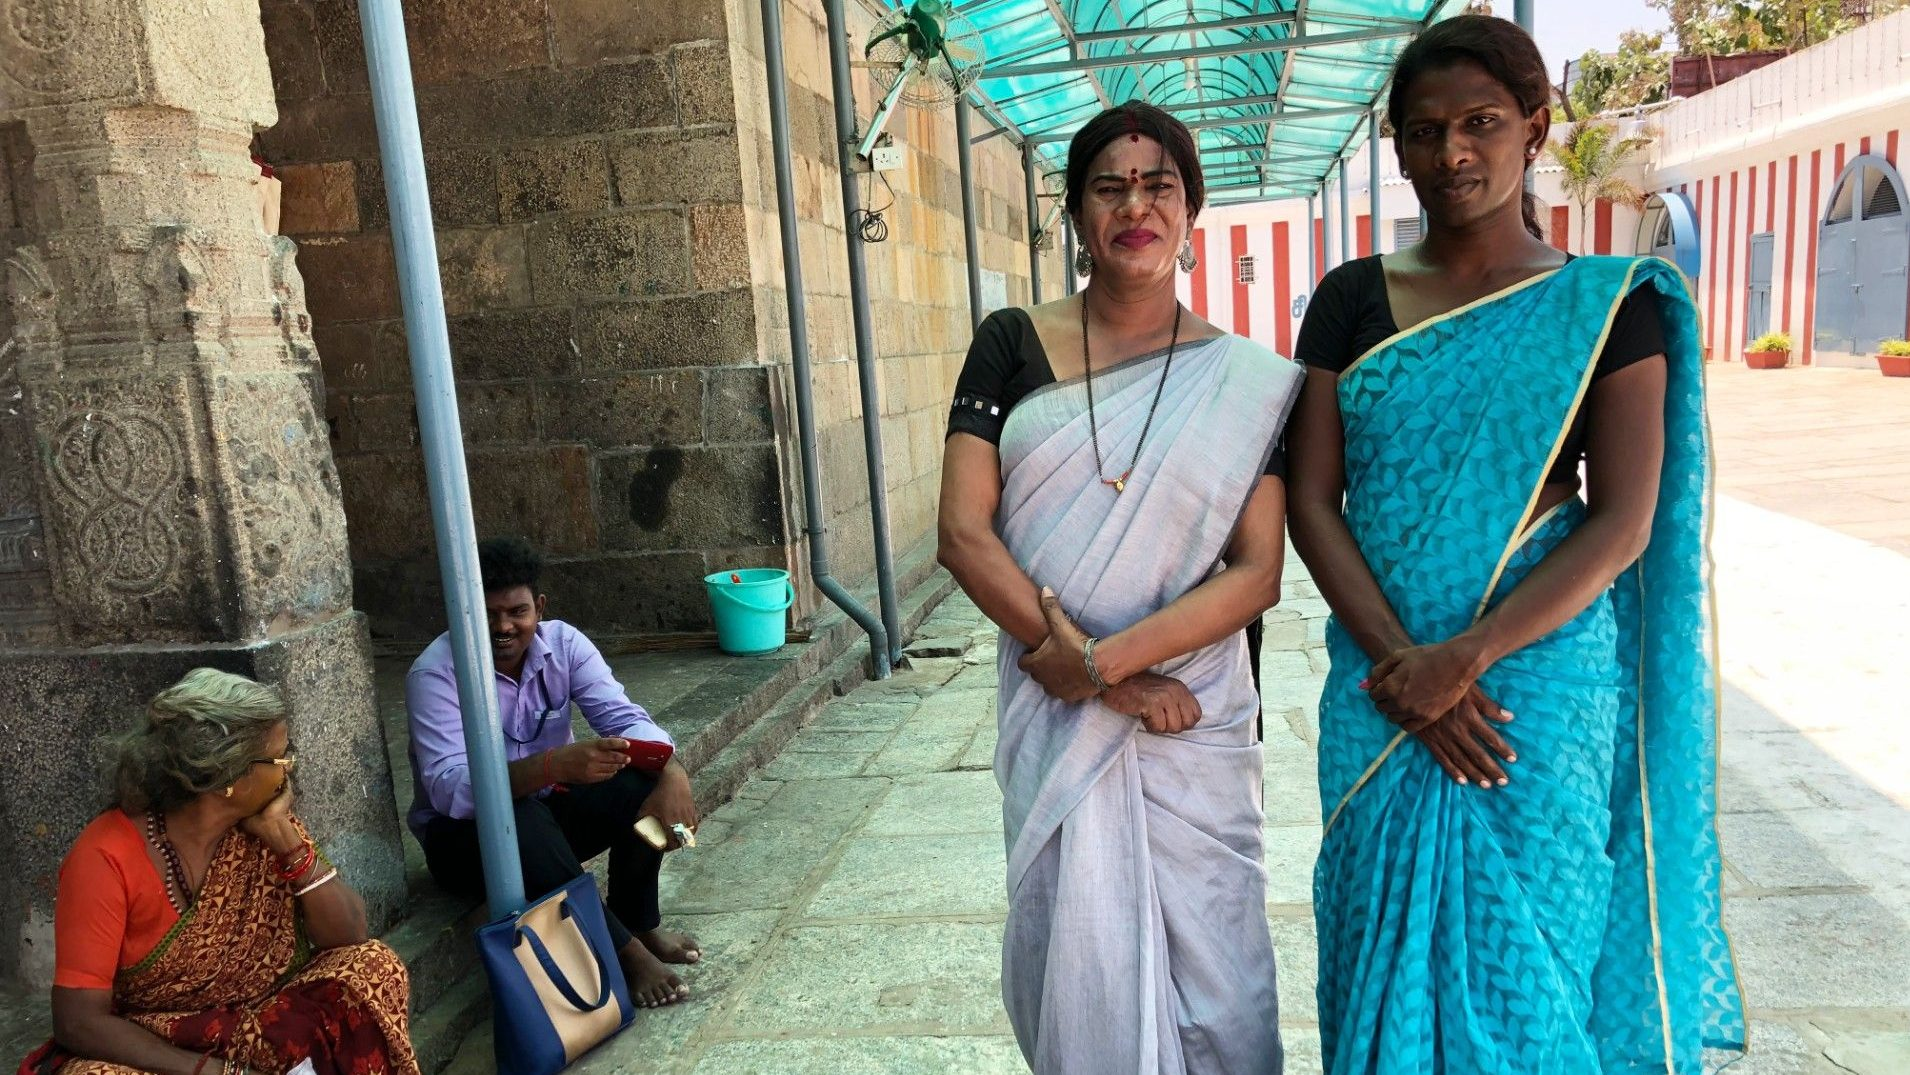 Tamil Nadu's first transgender woman candidate in election 2019